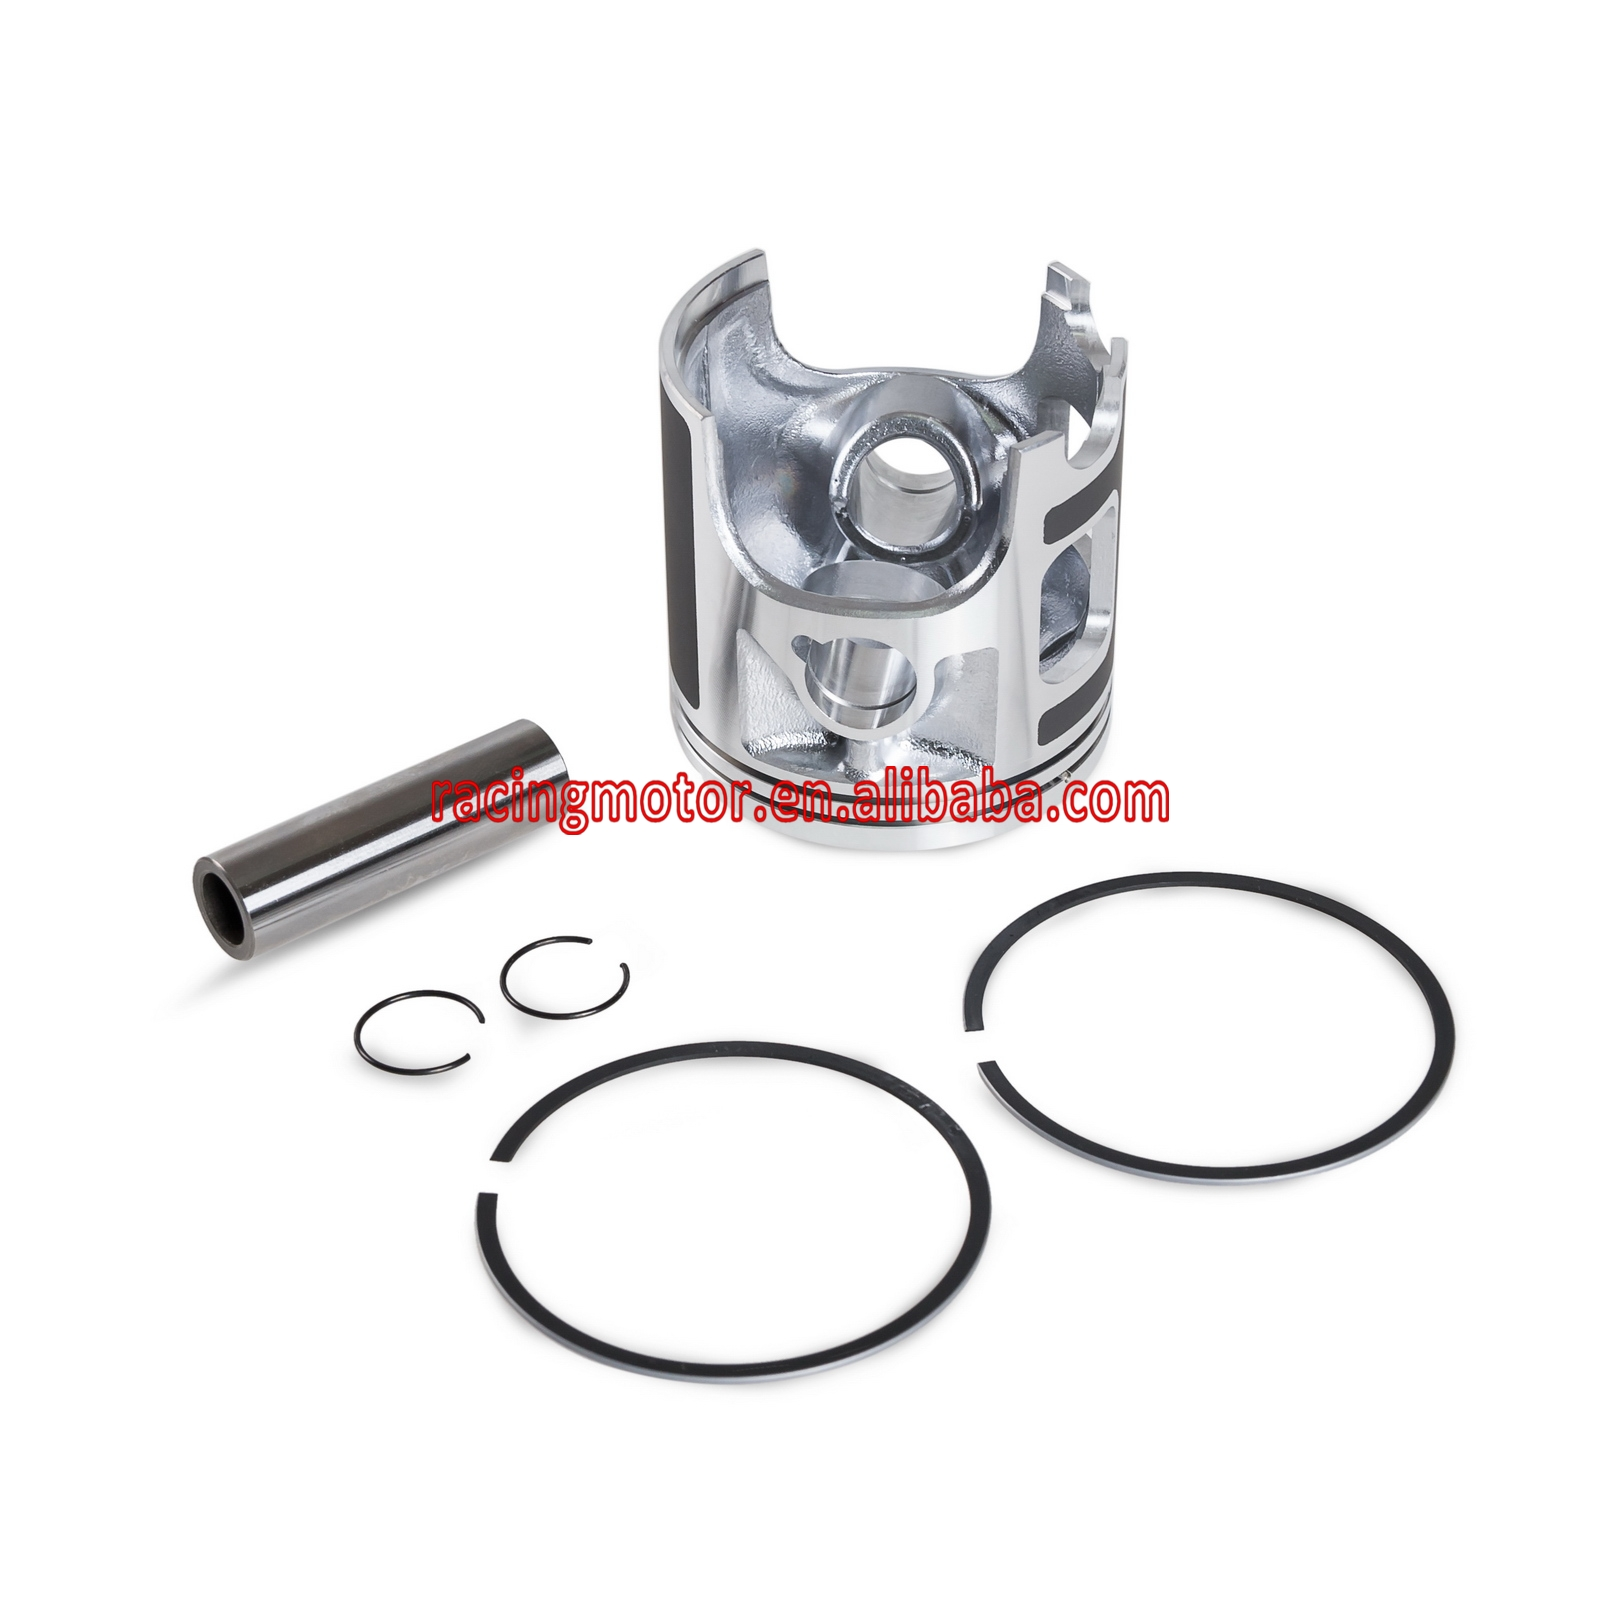 66mm 66.5mm 67mm 67.5mm 68 mm Bore Piston Kit For Yamaha Blaster 200 YFS200 1988-2006 Yamaha Blaster 200 цены